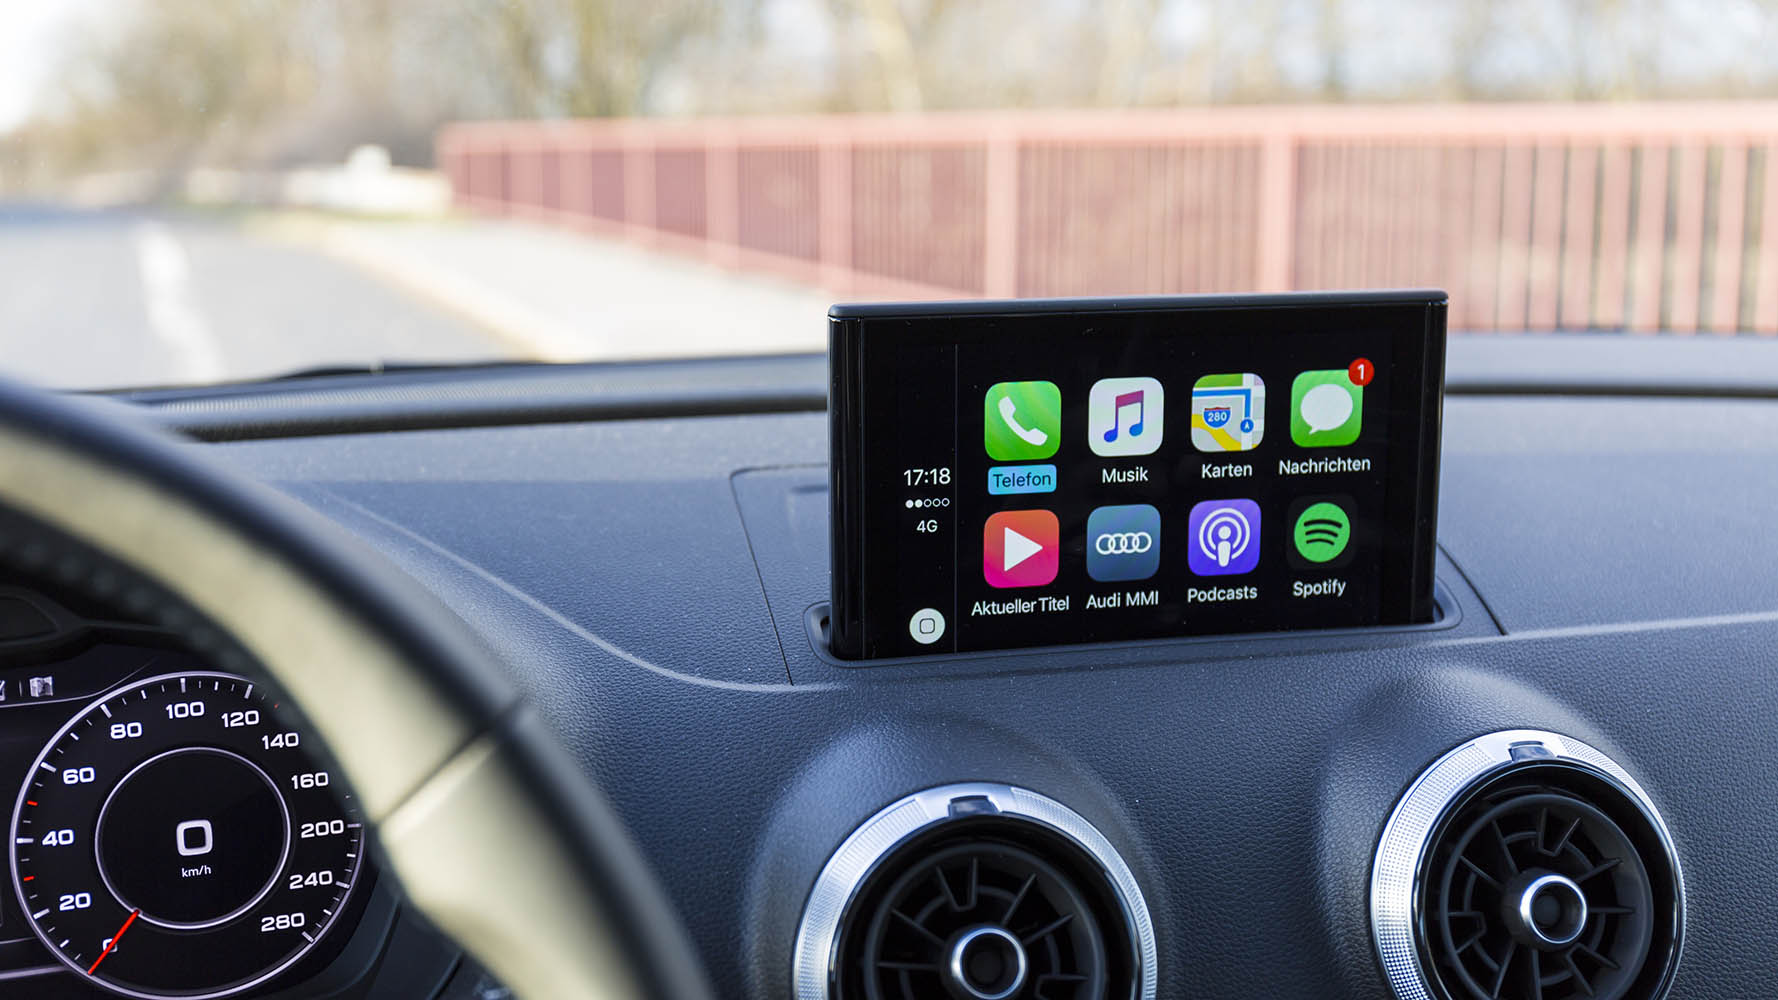 apple carplay on a touchscreen infotainment system